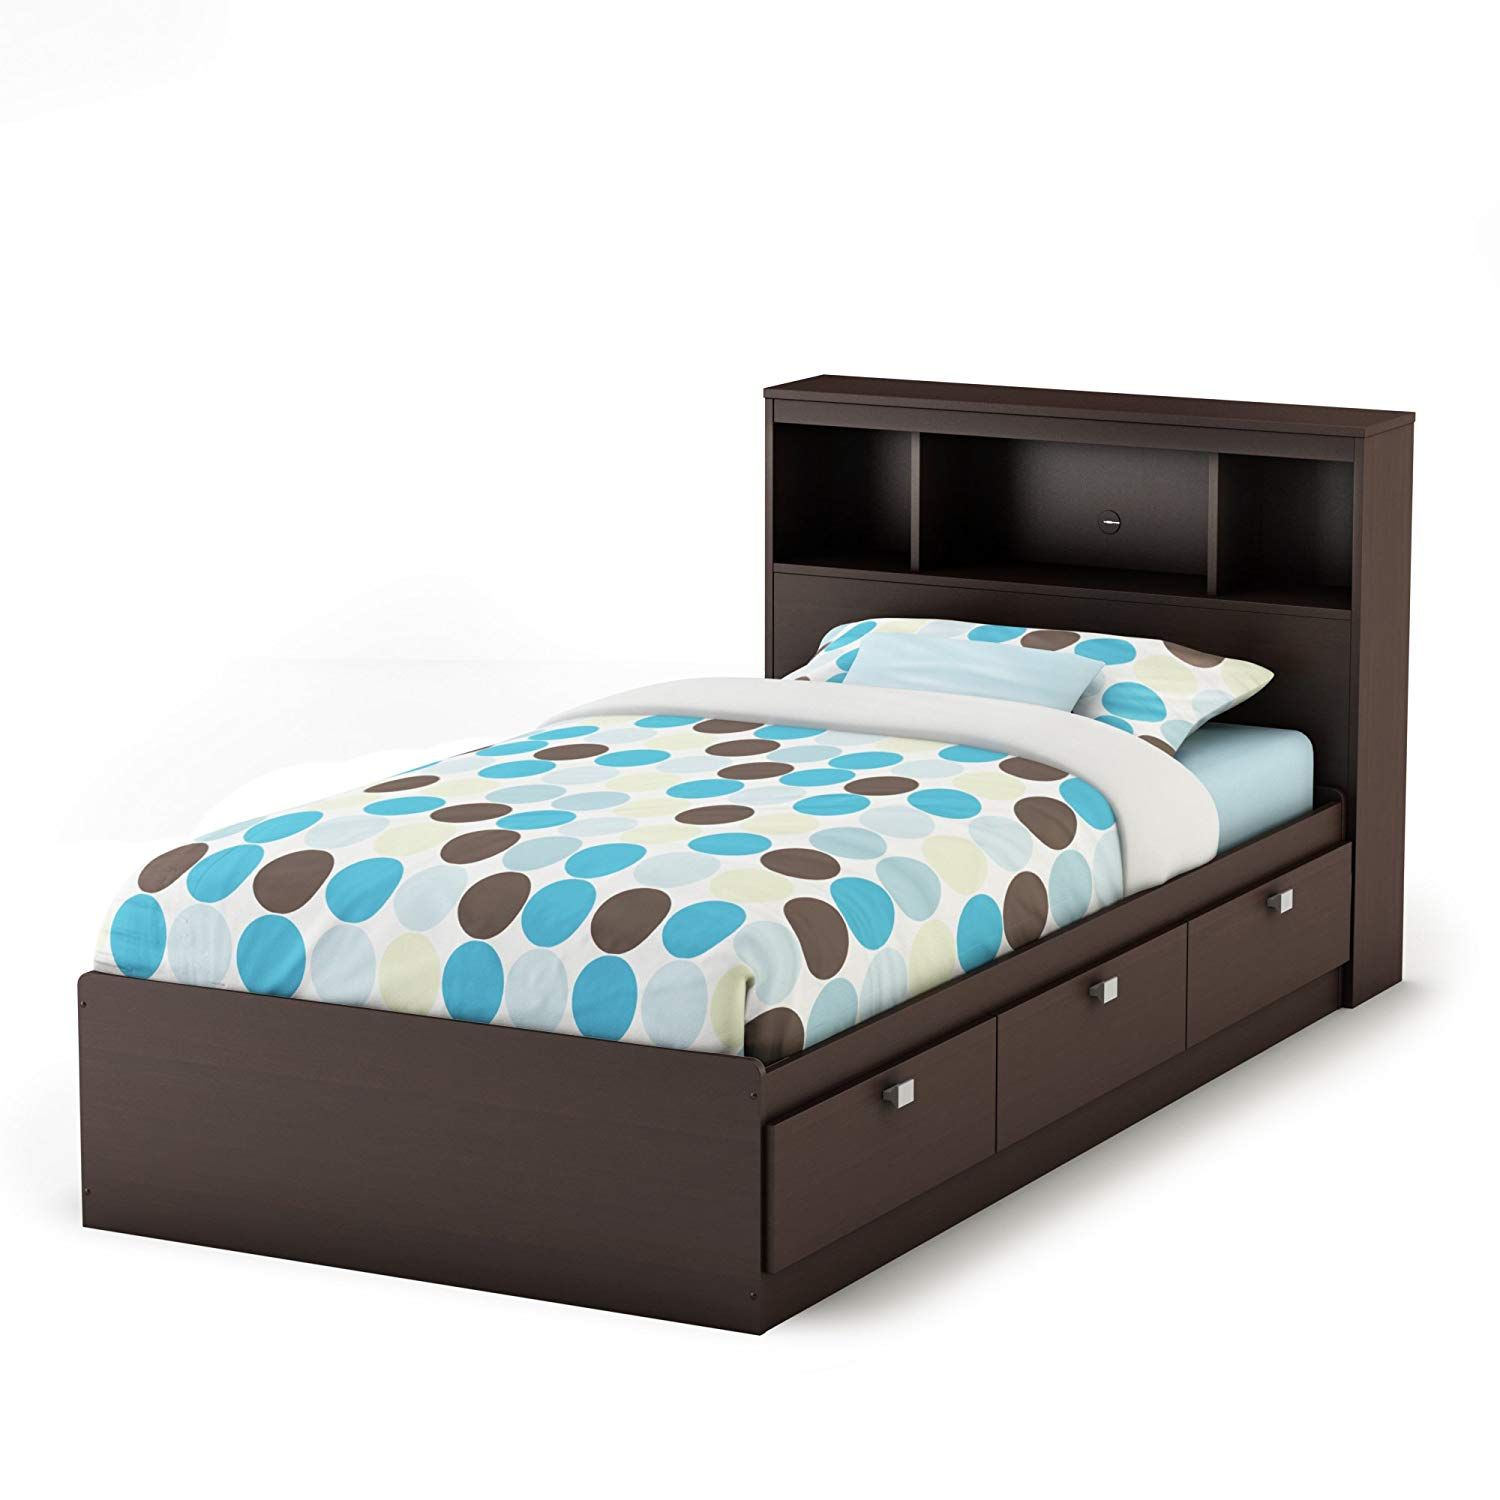 South Shore Twin Mate Captain S Bed With Bookcase Headboard In Chocolate Finish